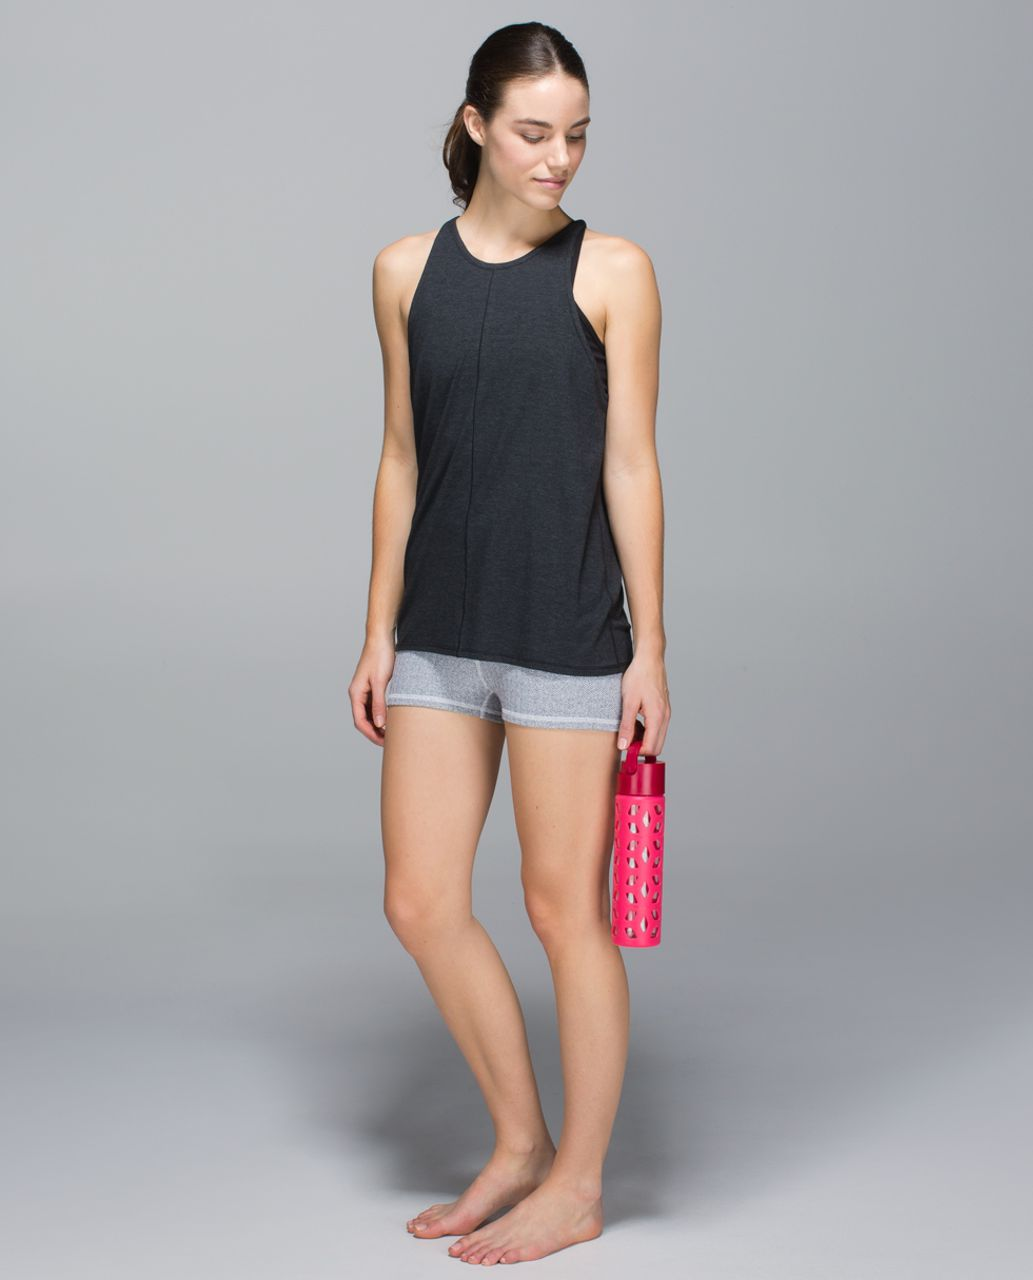 Lululemon Boogie Short (Roll Down) *Full-On Luon - Heathered Herringbone Heathered Black White